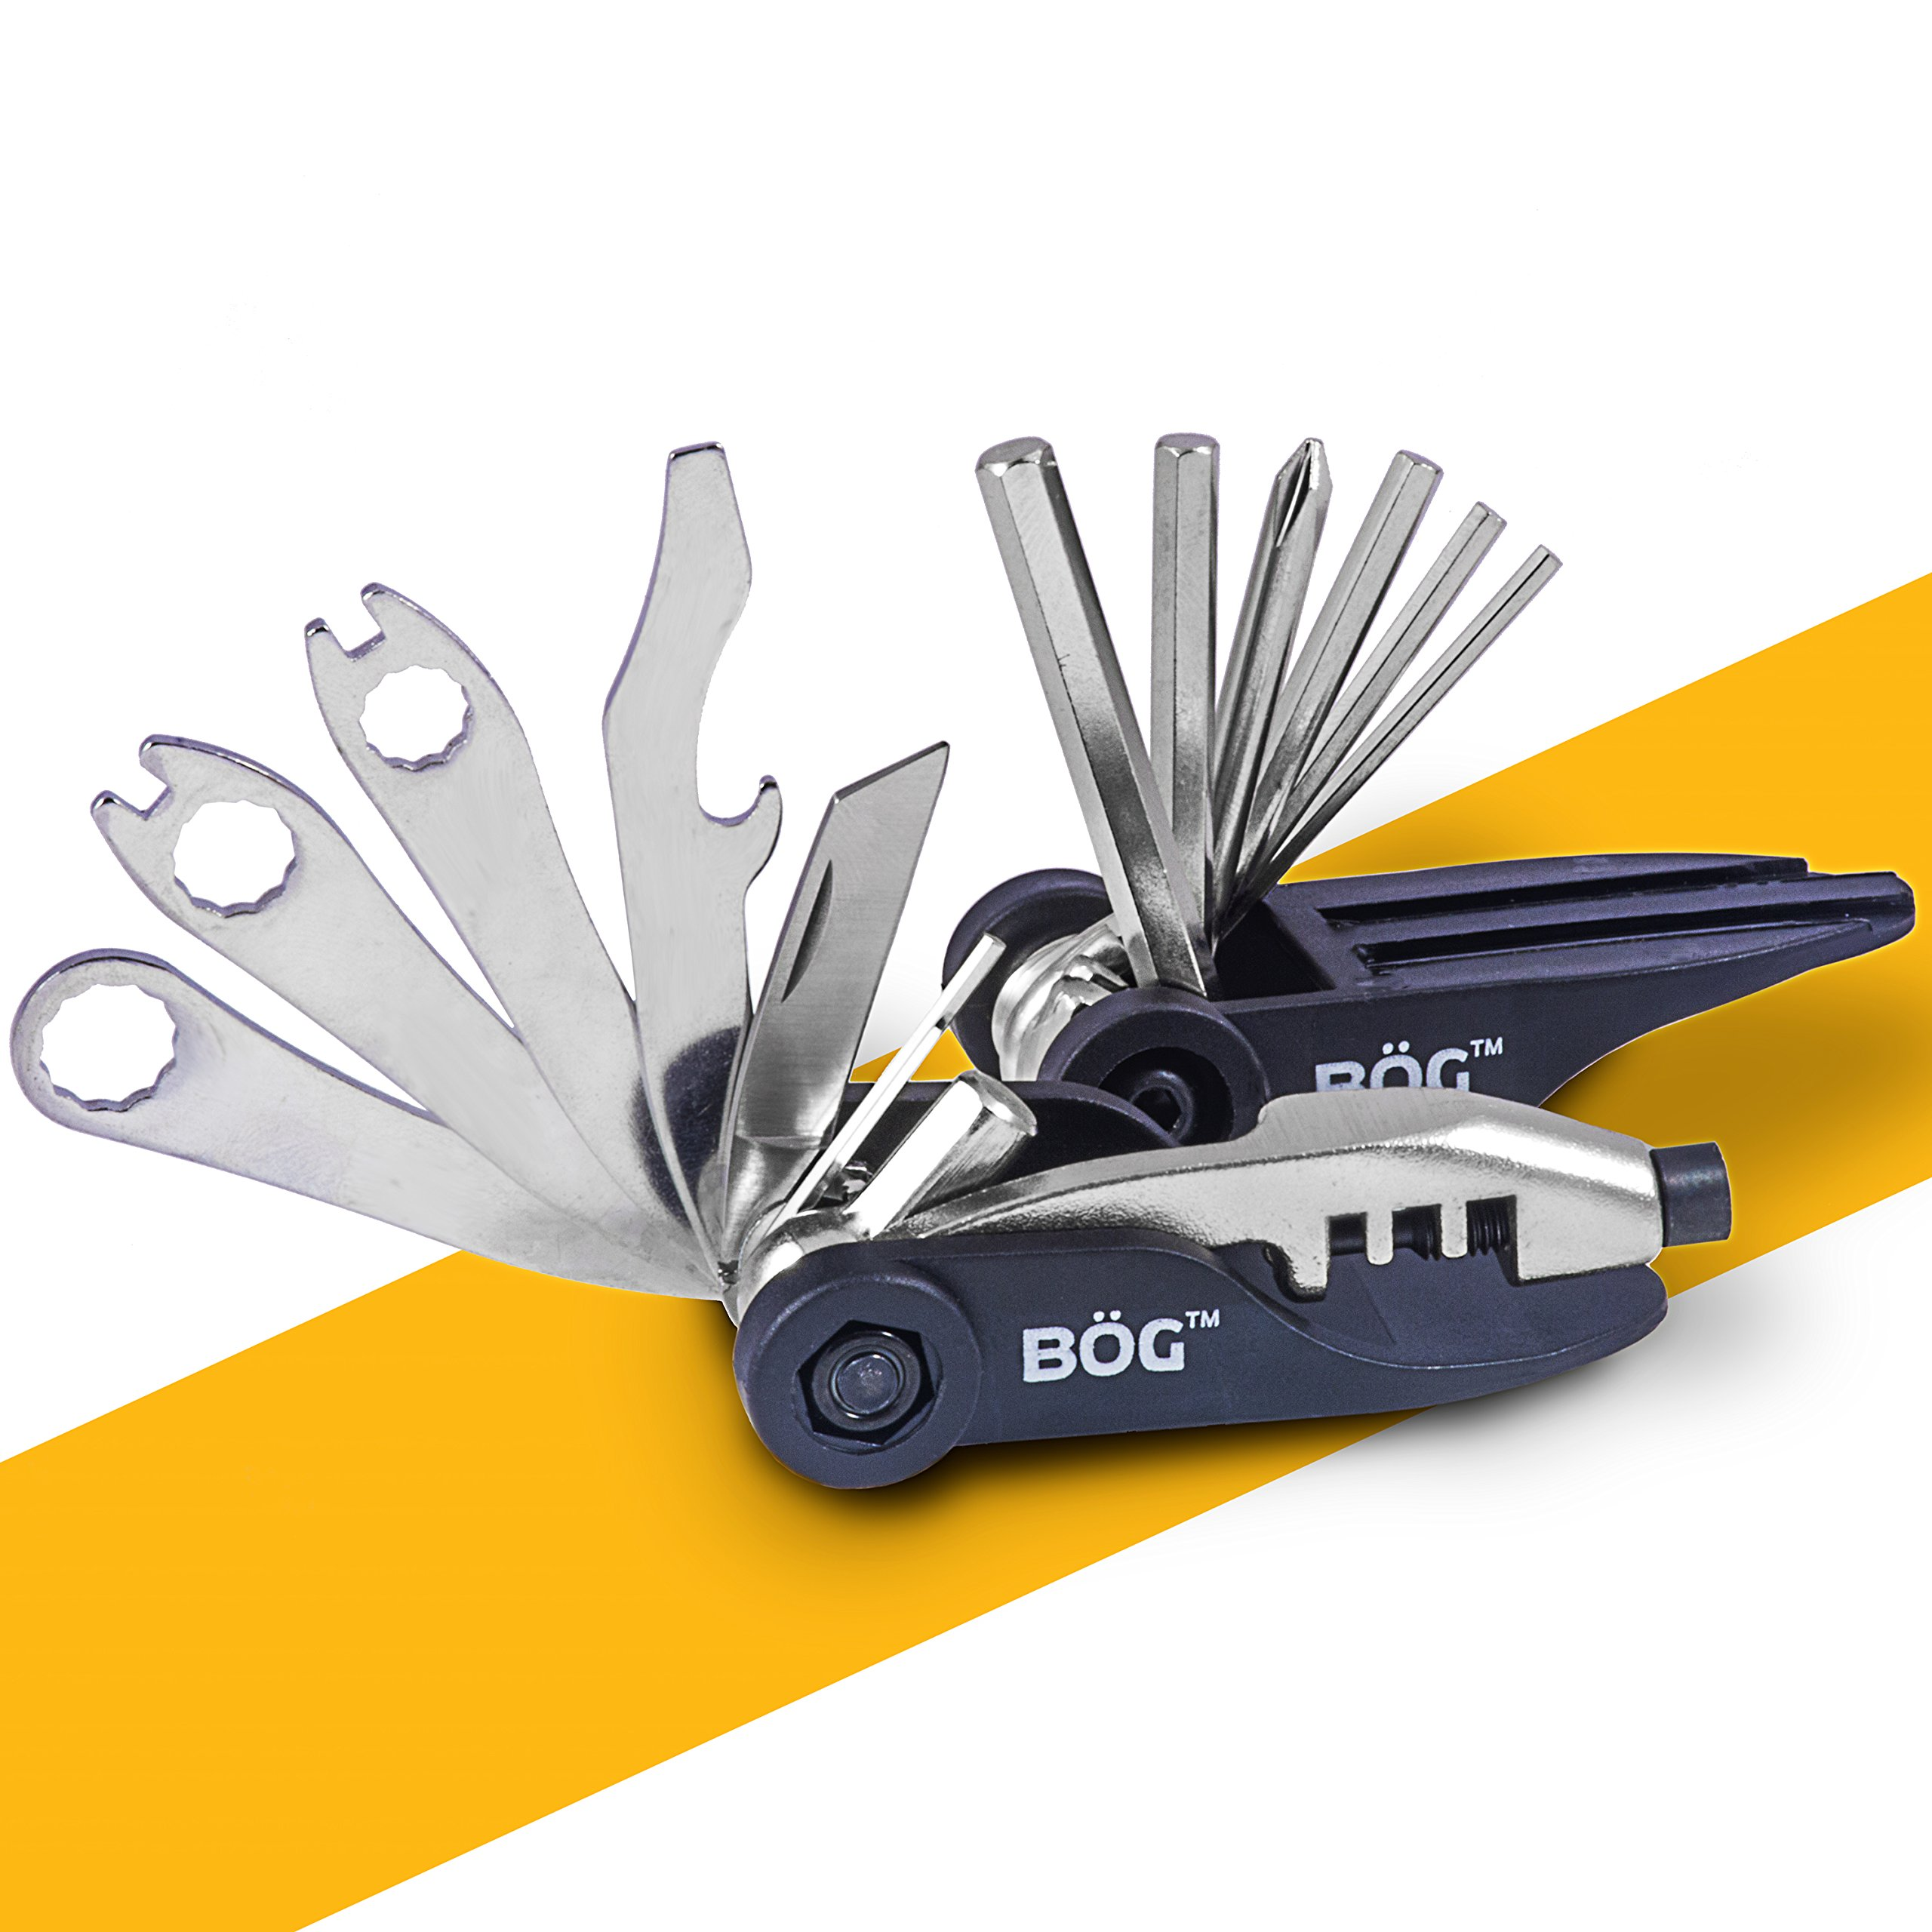 BoG Products Bike MultiTOOL 18 Function Compact folding Tool Set ~ Great Gift for Bicycle Riders